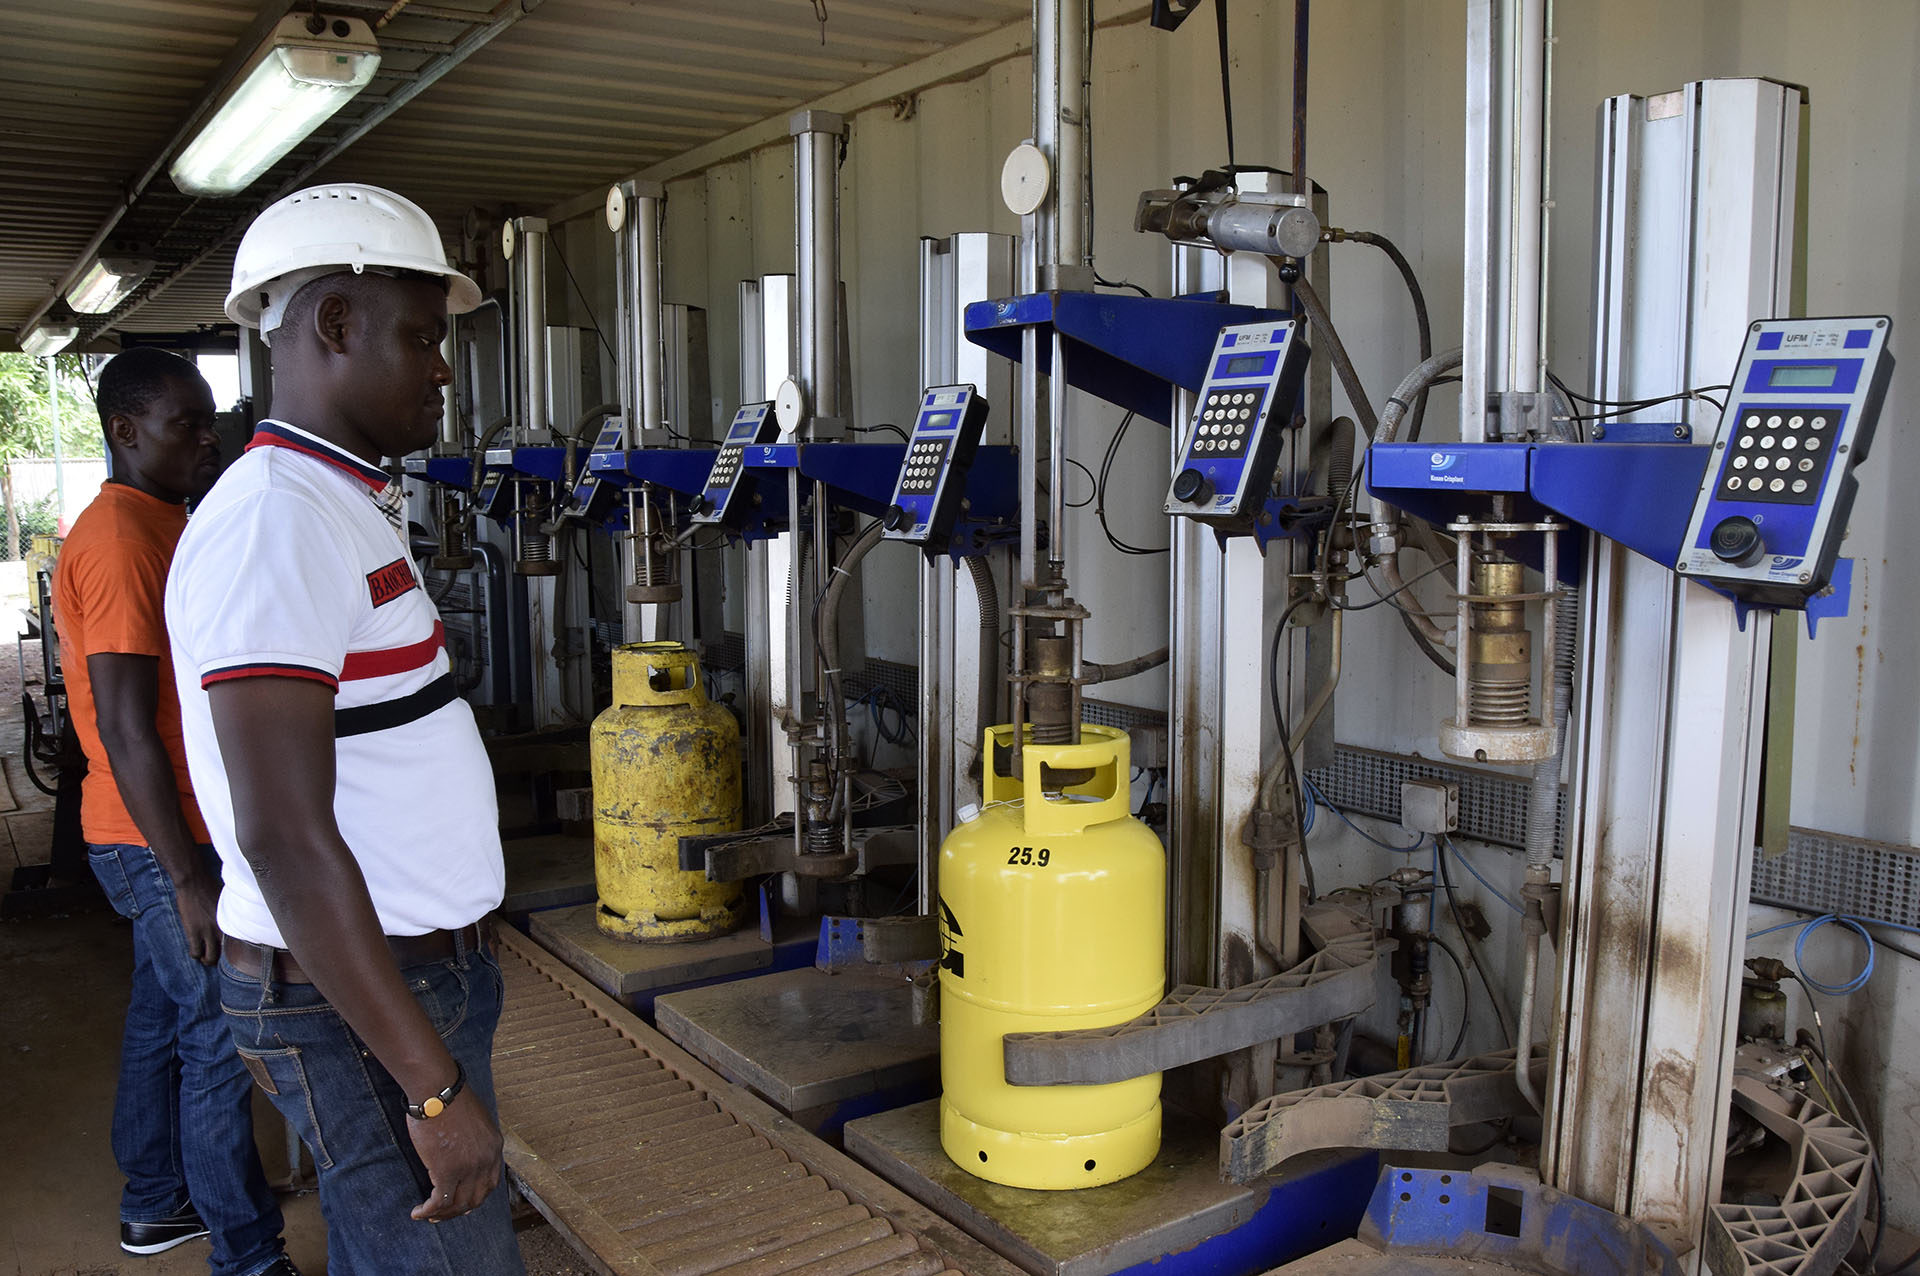 GlocalGaz LPG filling plant, Limbe, Cameroon, a modern facility for supplying clean cooking fuel to a growing market